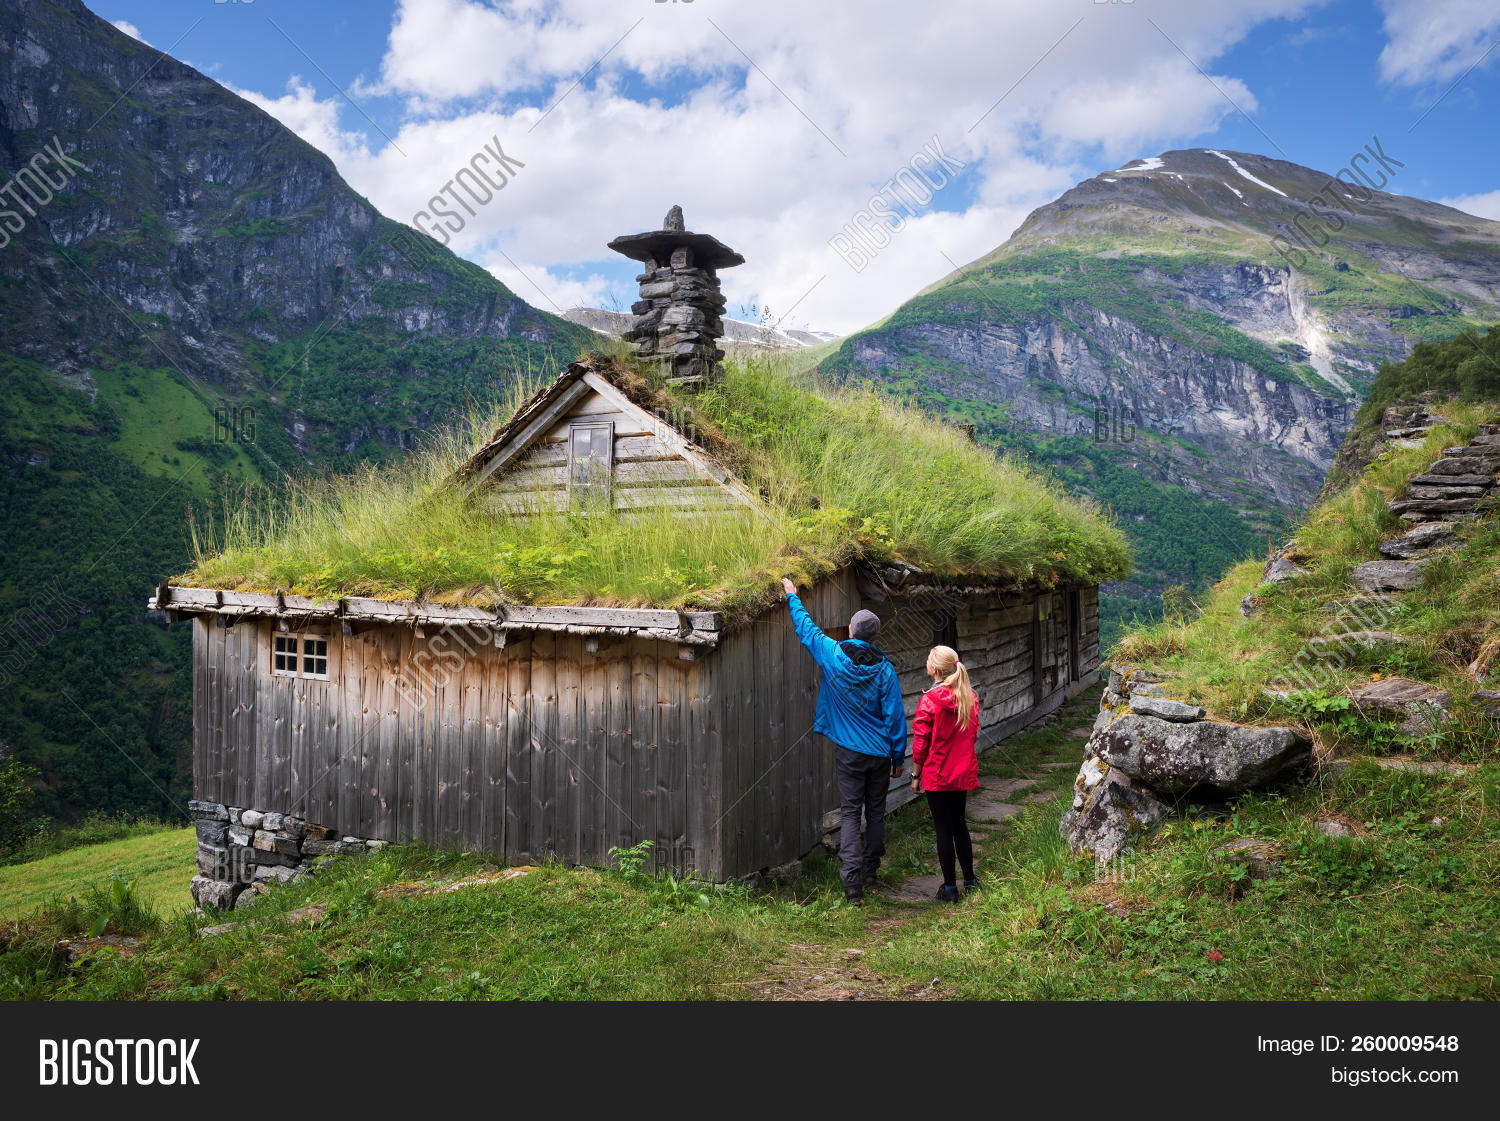 adventure,architecture,countryside,couple,divot,famous place,farm,grass,green,greensward,guy,hike,hiker,hiking,historic,home,kagefla,landmark,landscape,mountain hut,mountains,north,northern,norway,norwegian,old,roof,rural,scandinavia,scenery,scenic,sights,sod,stroll,summer,tourism,tourist attraction,traditional,travel,traveler,turf,turf houses,vacation,walk,woman,wooden